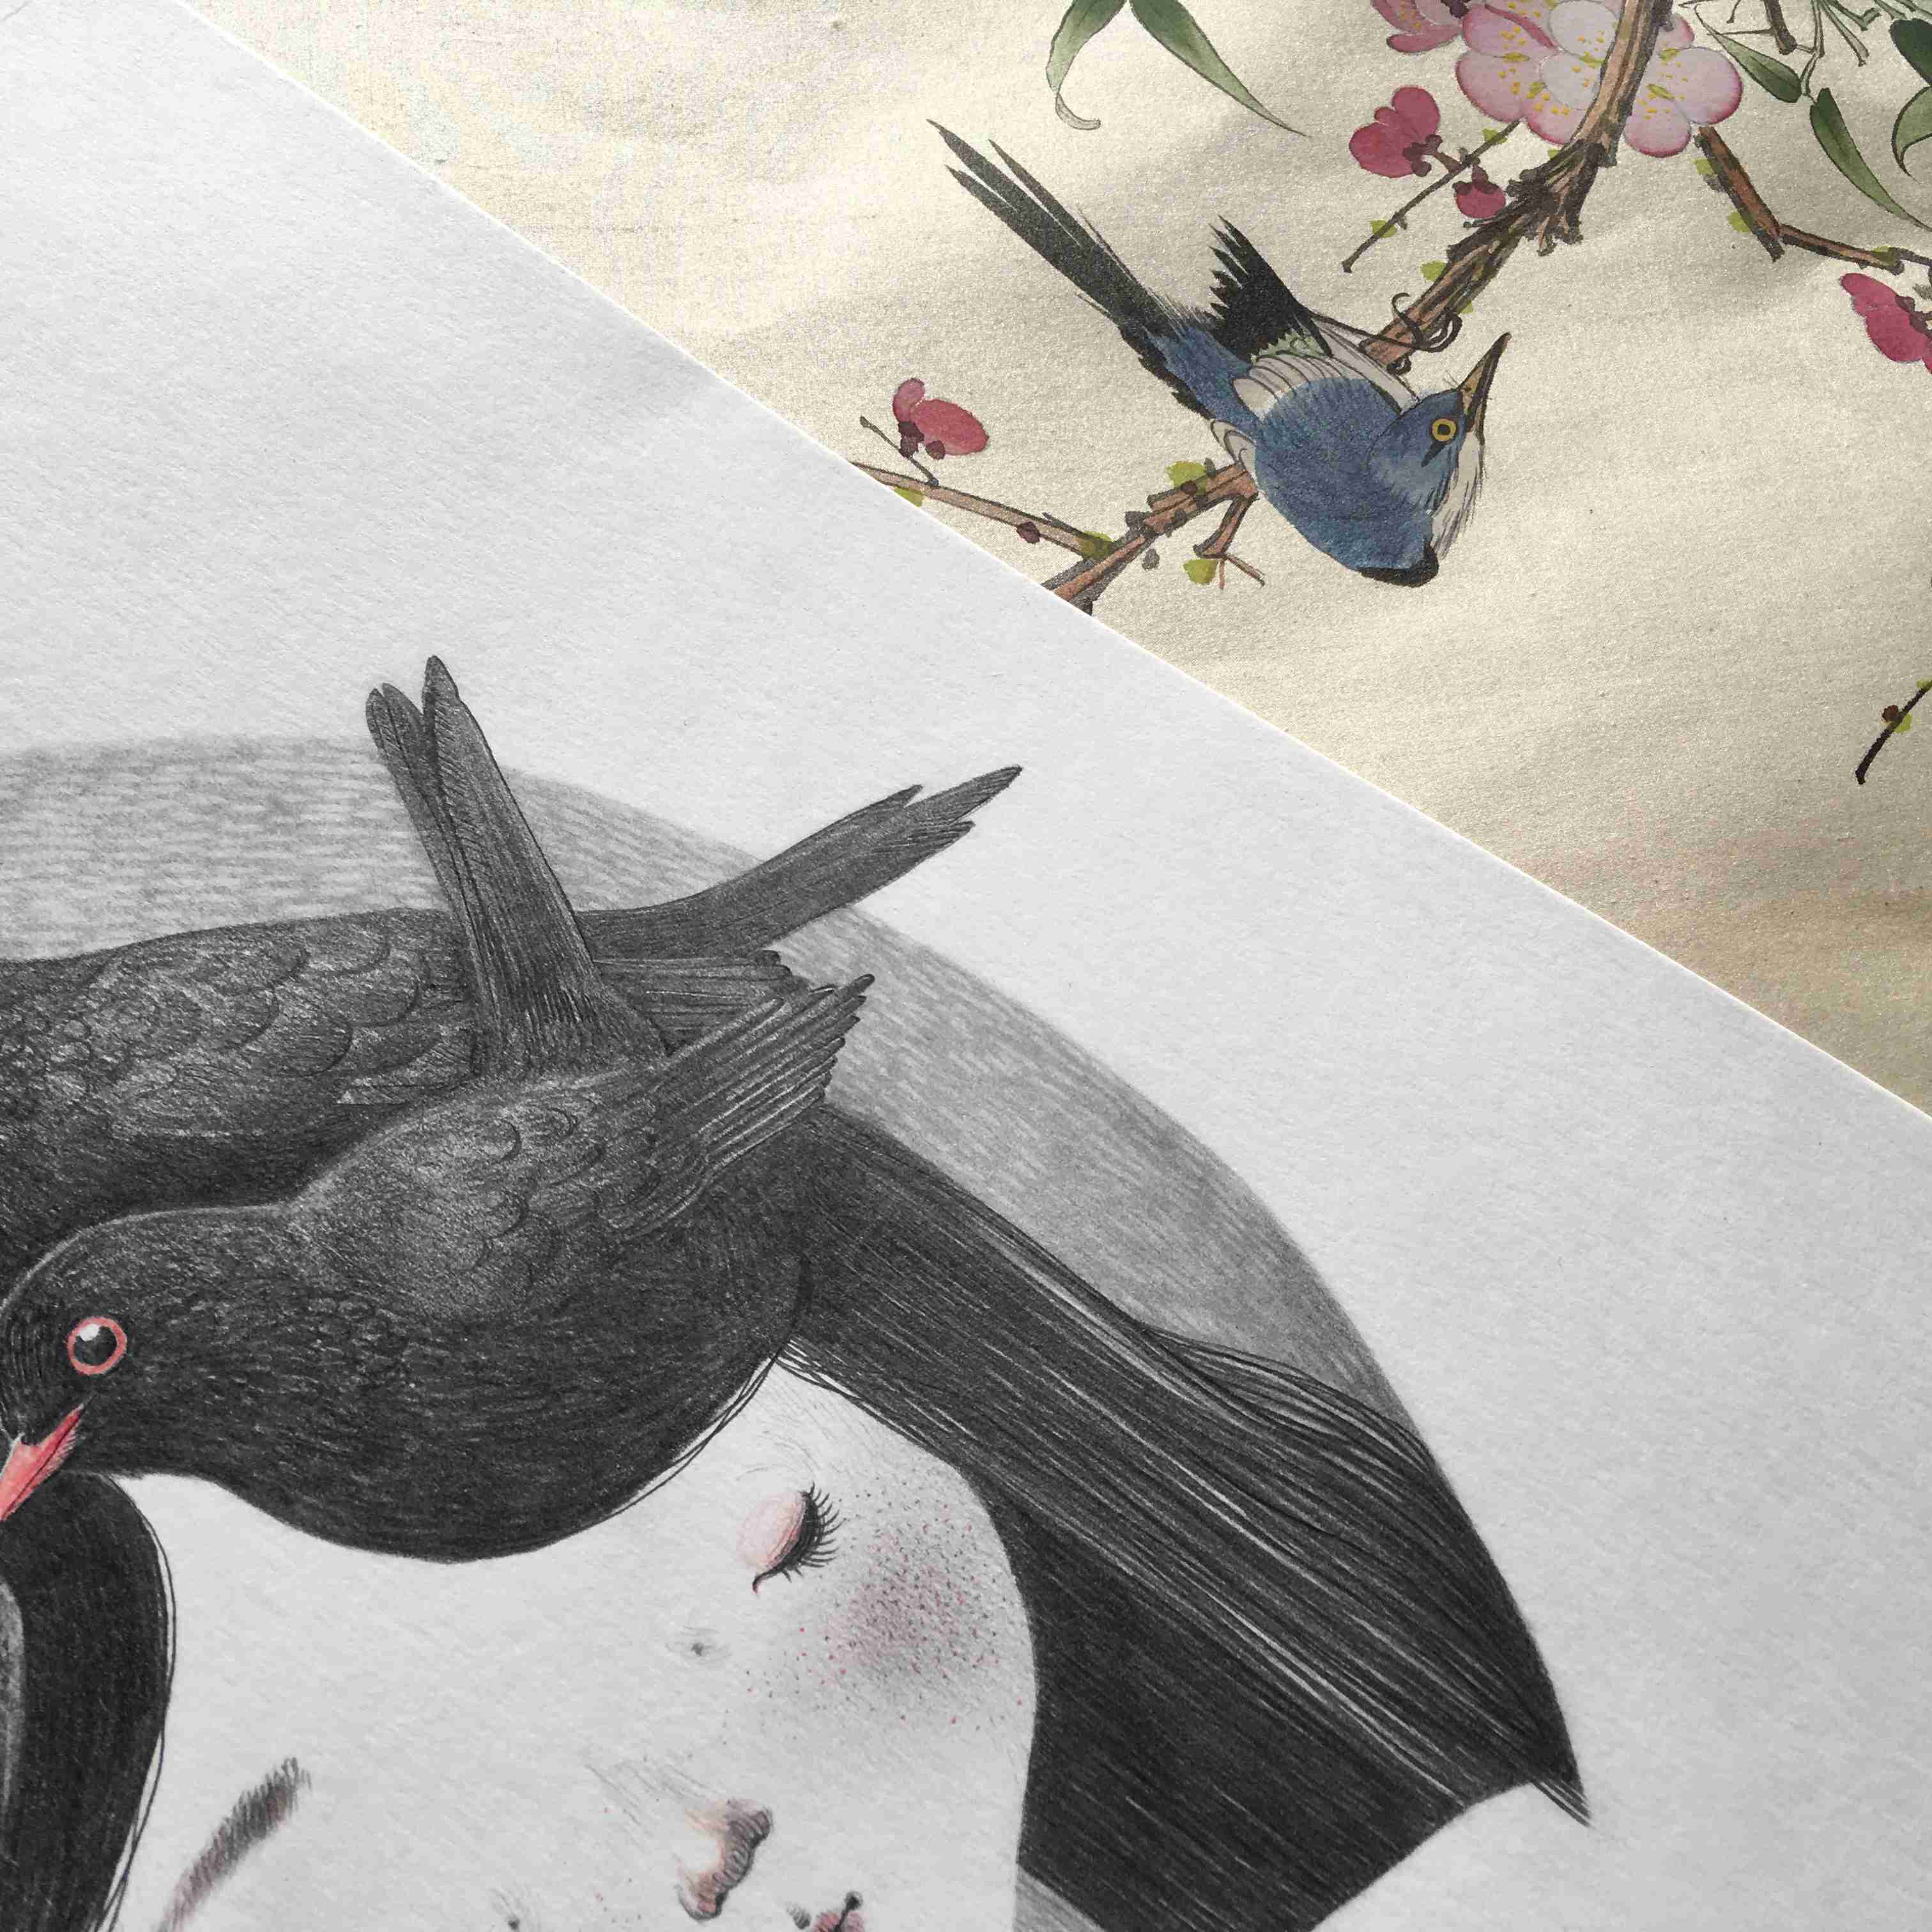 seforapons-graphite-coloured pencils-girl-blackbird-symbiosis-kurotadorichan-2